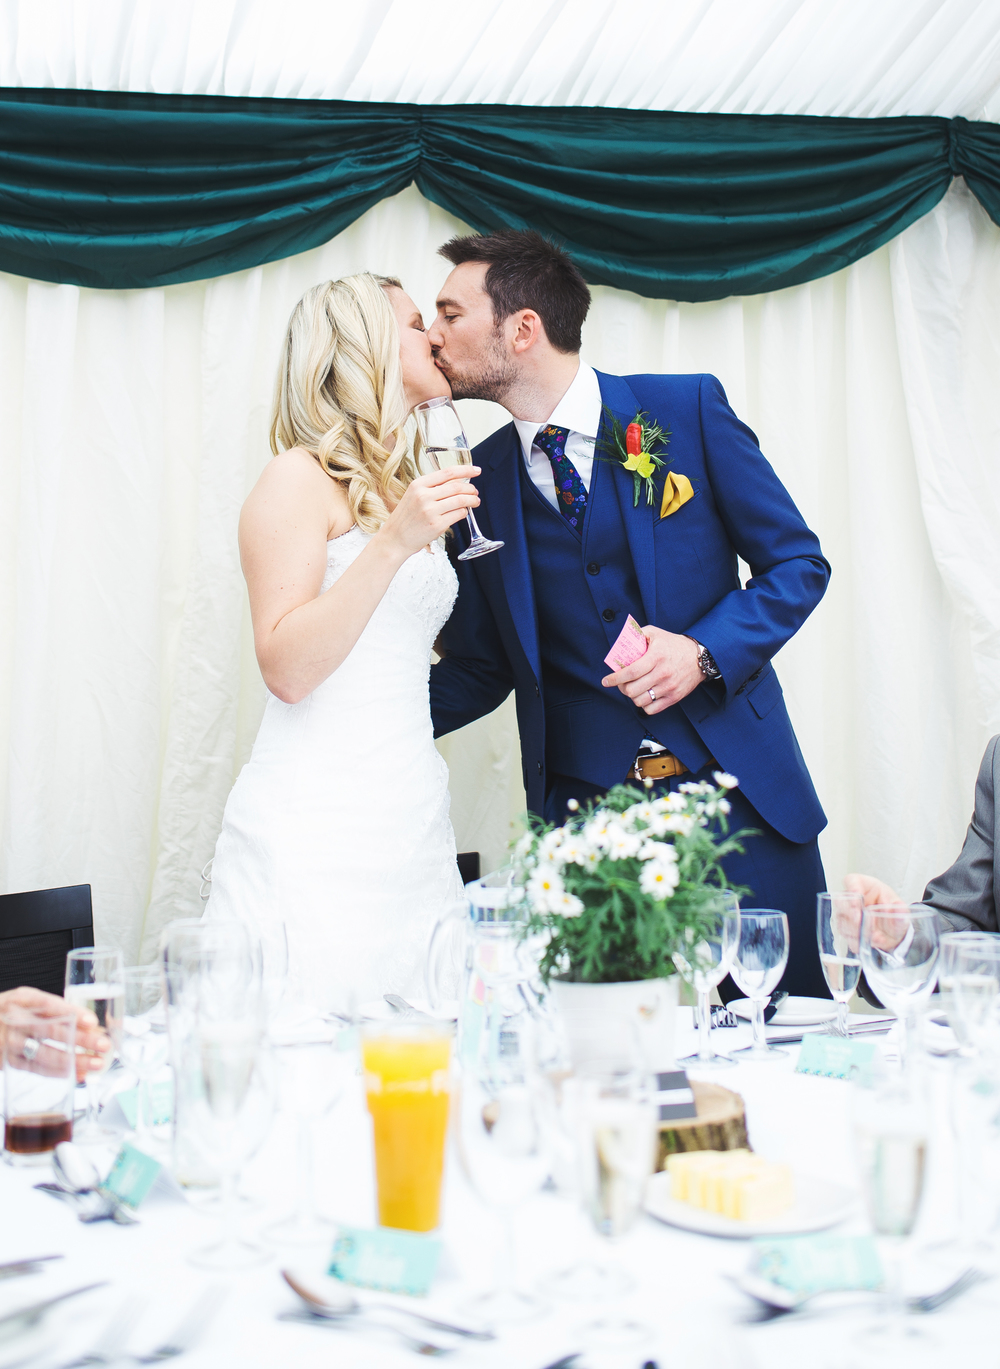 The bride and groom share a kiss.